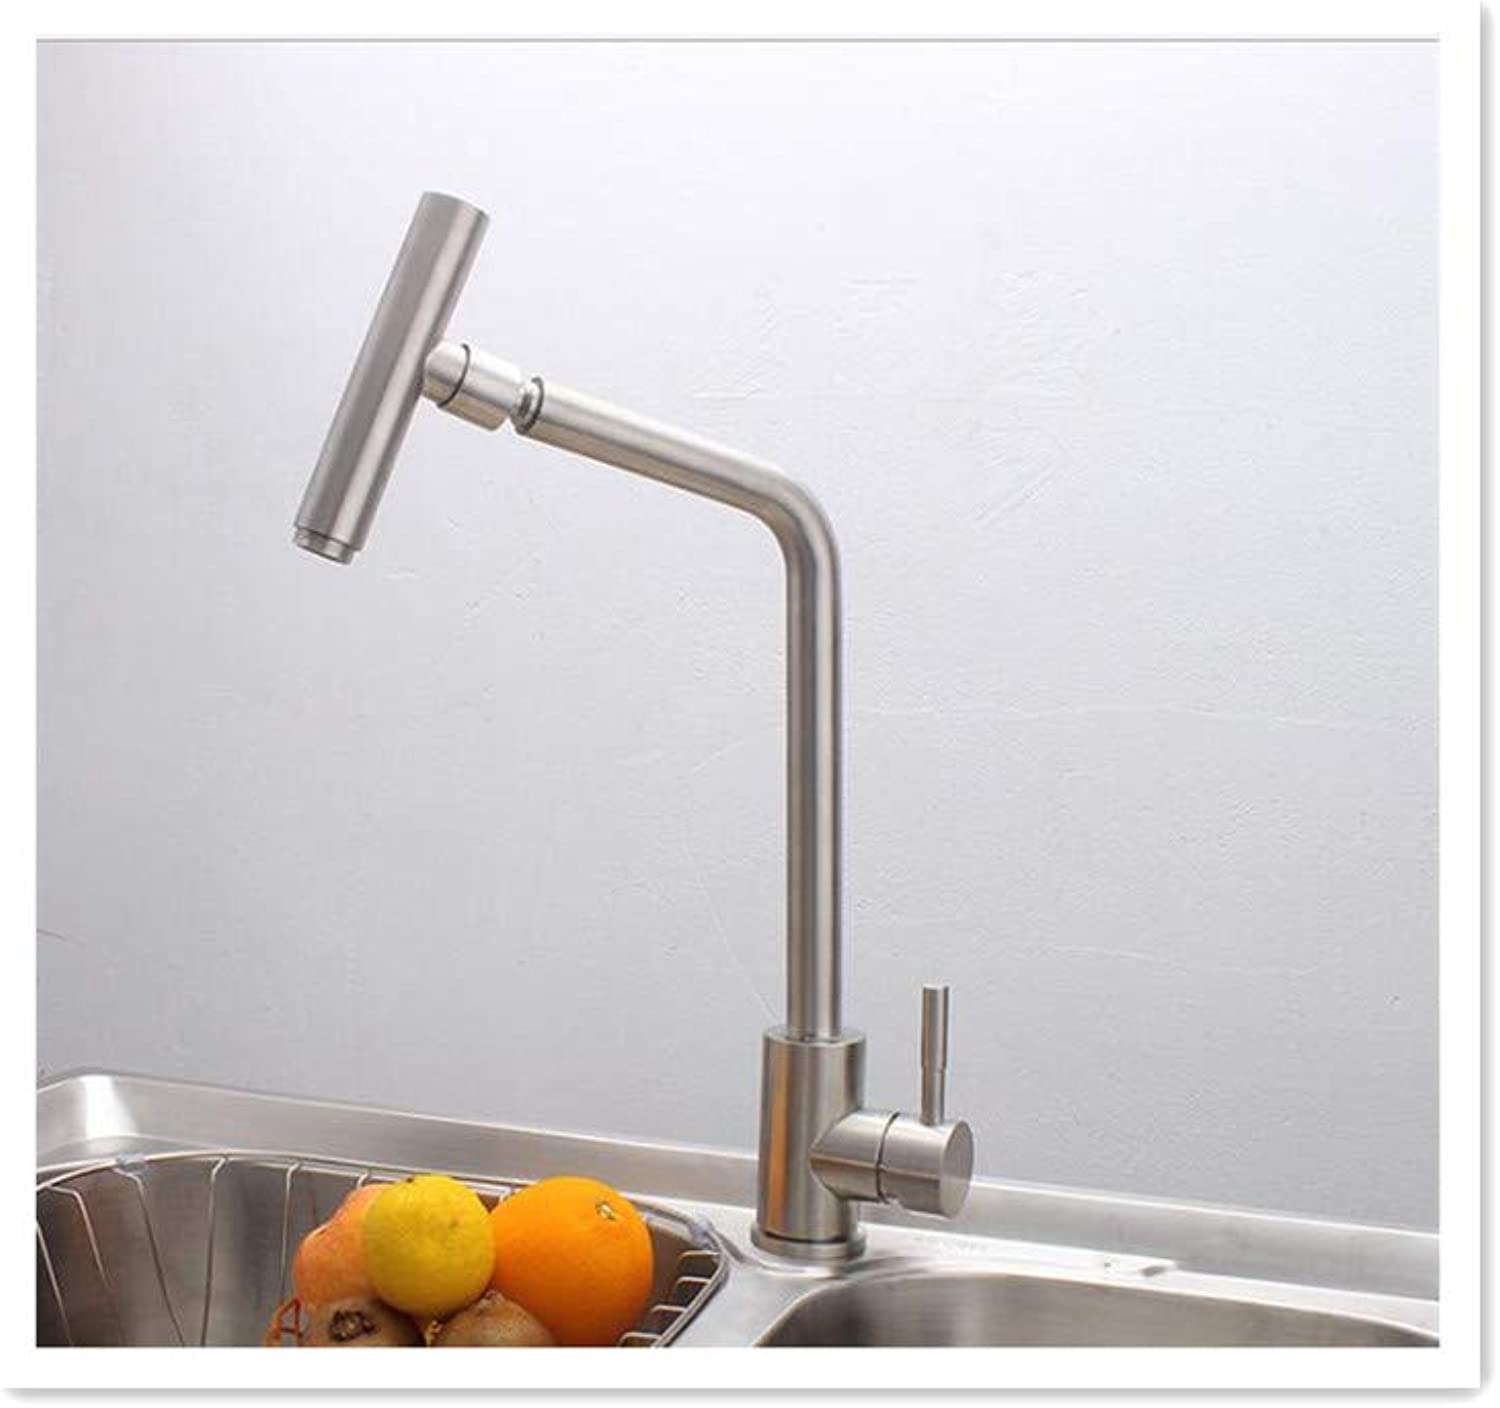 BBQBQ 304 stainless steel faucet thermostat kitchen faucet hot and cold water sink sink mixing valve bathroom